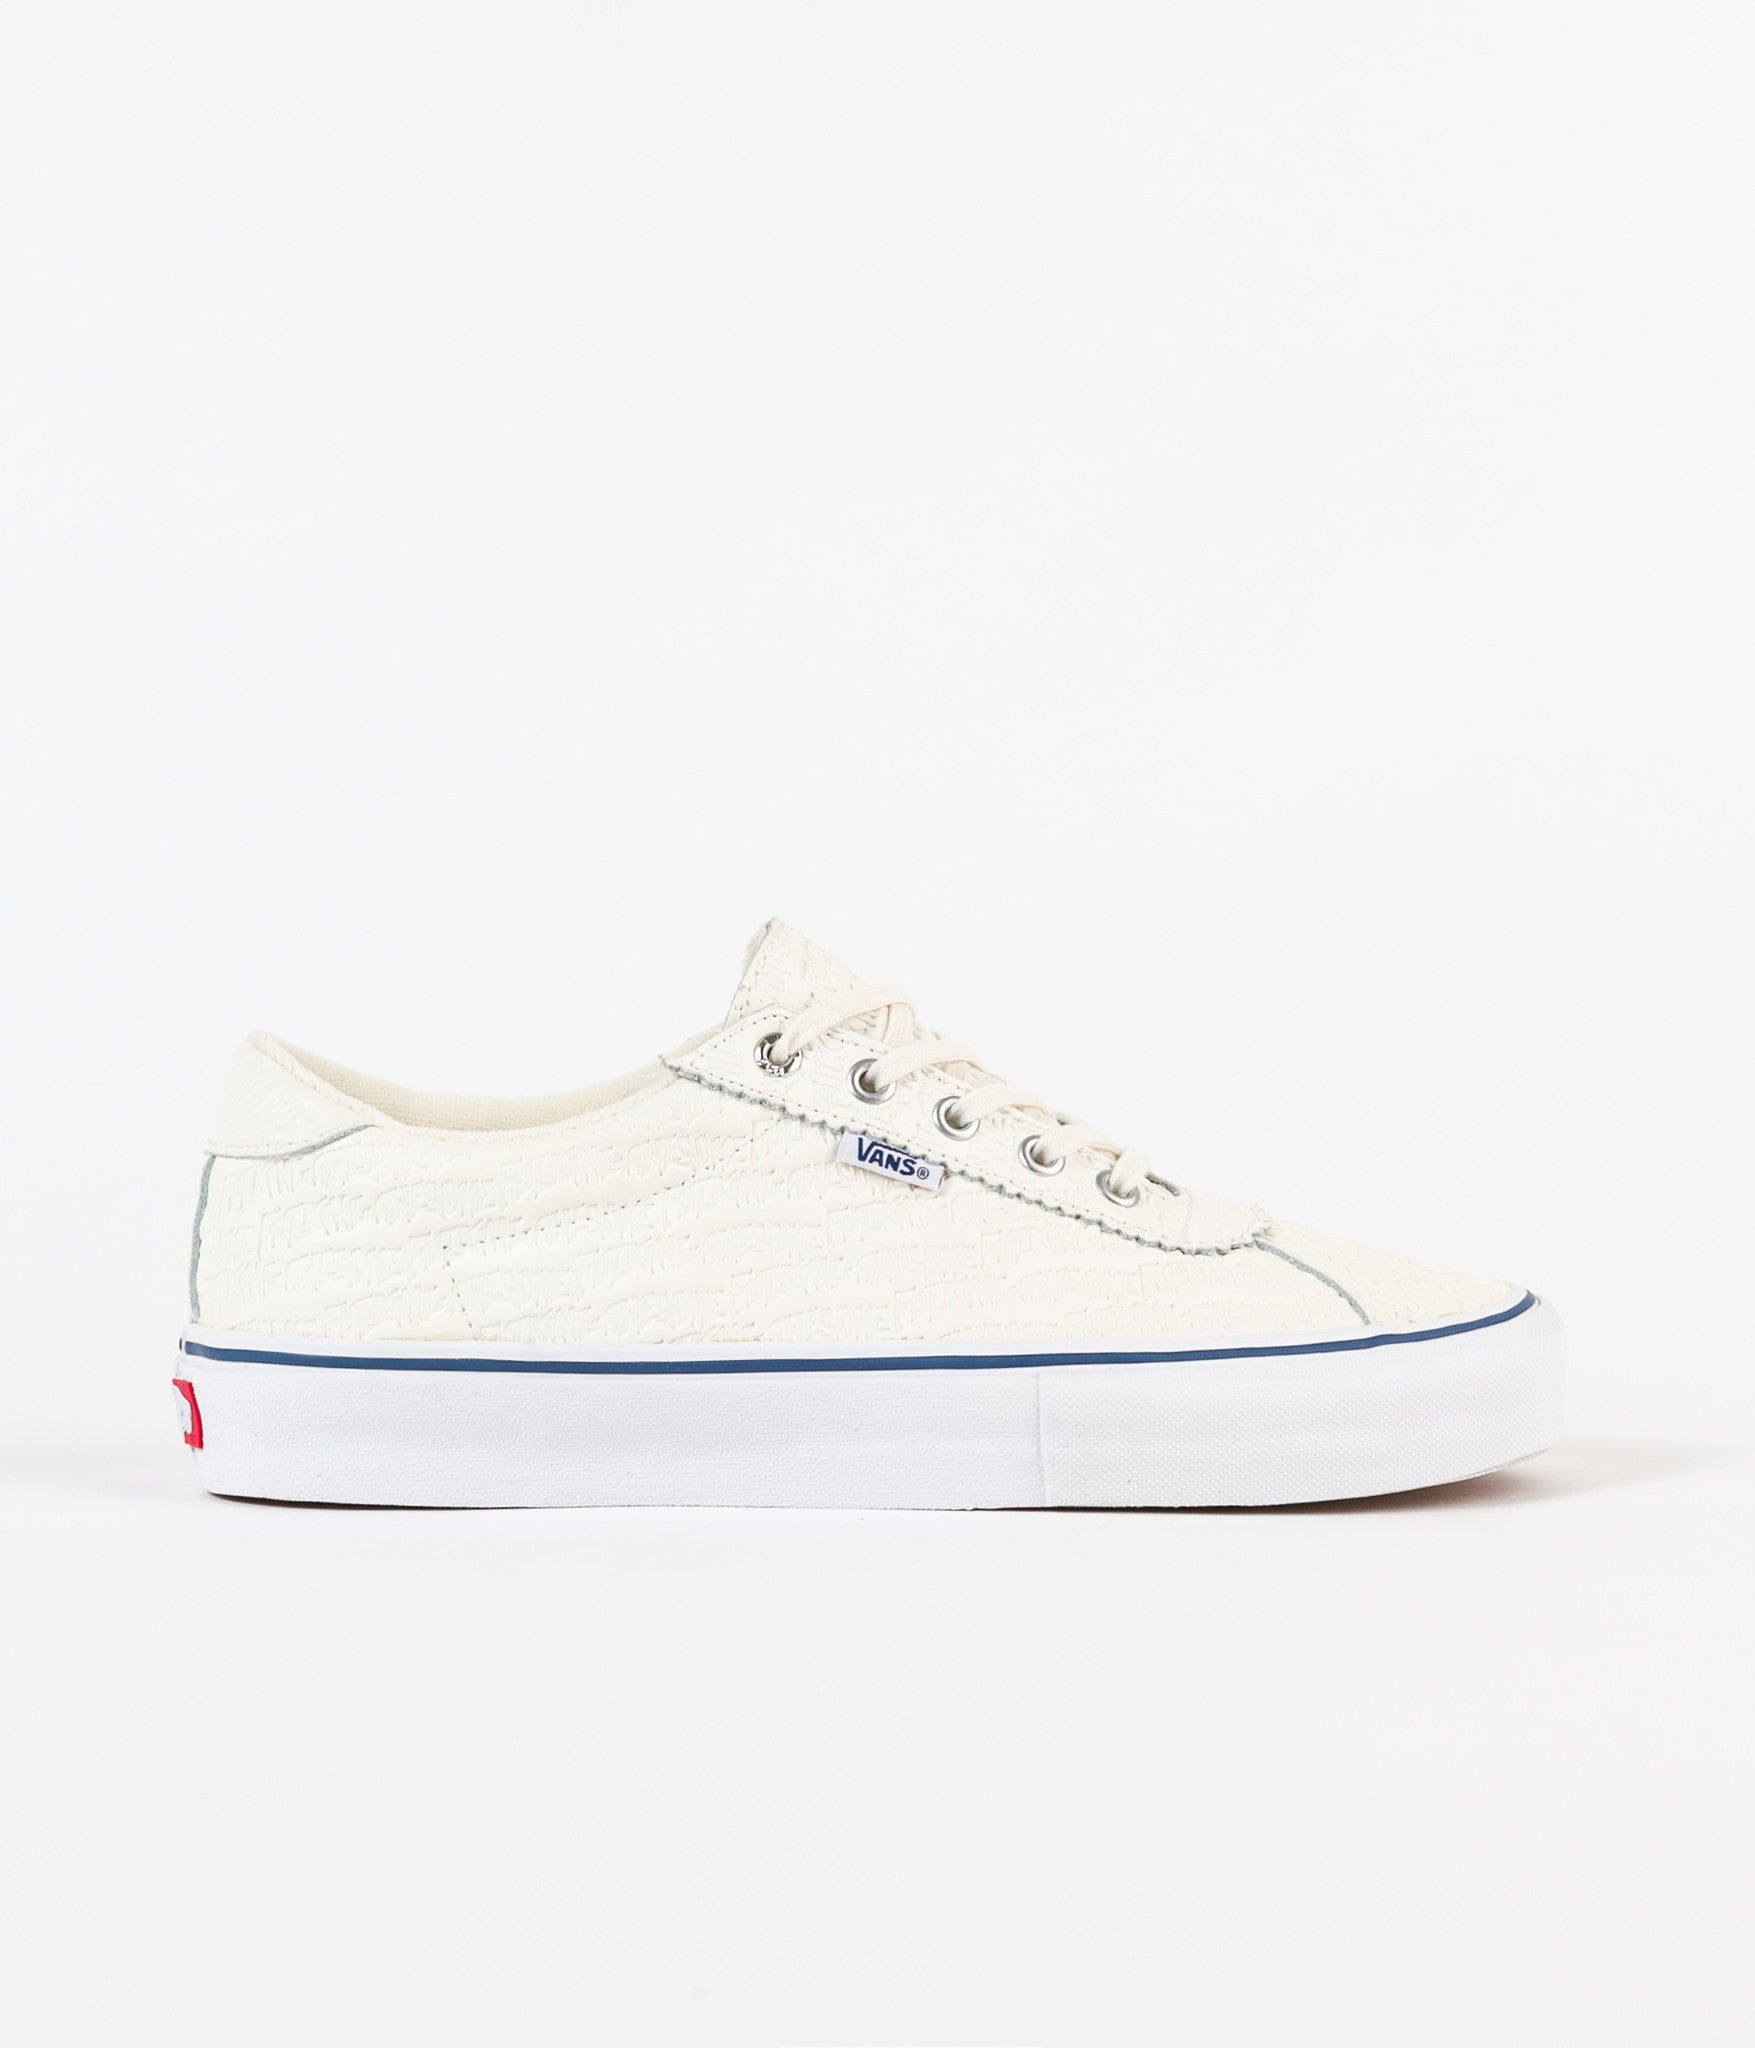 Vans x Fucking Awesome Epoch '94 Pro Shoes - White